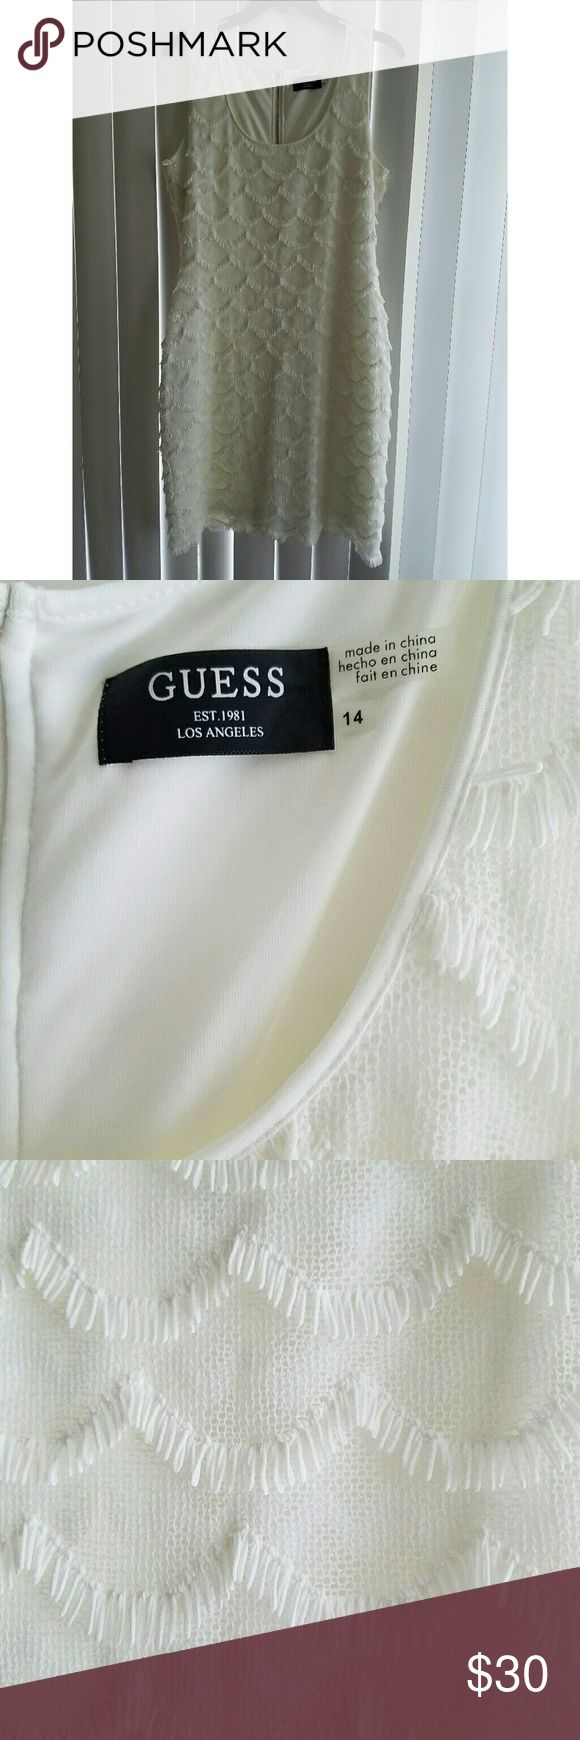 Size 14 Ivory Guess Dress. 30's style Guess Dress. Size 14. Ivory colored, with scallop details and fringe. Brand new. Never worn. Missing tags. Guess Dresses Mini